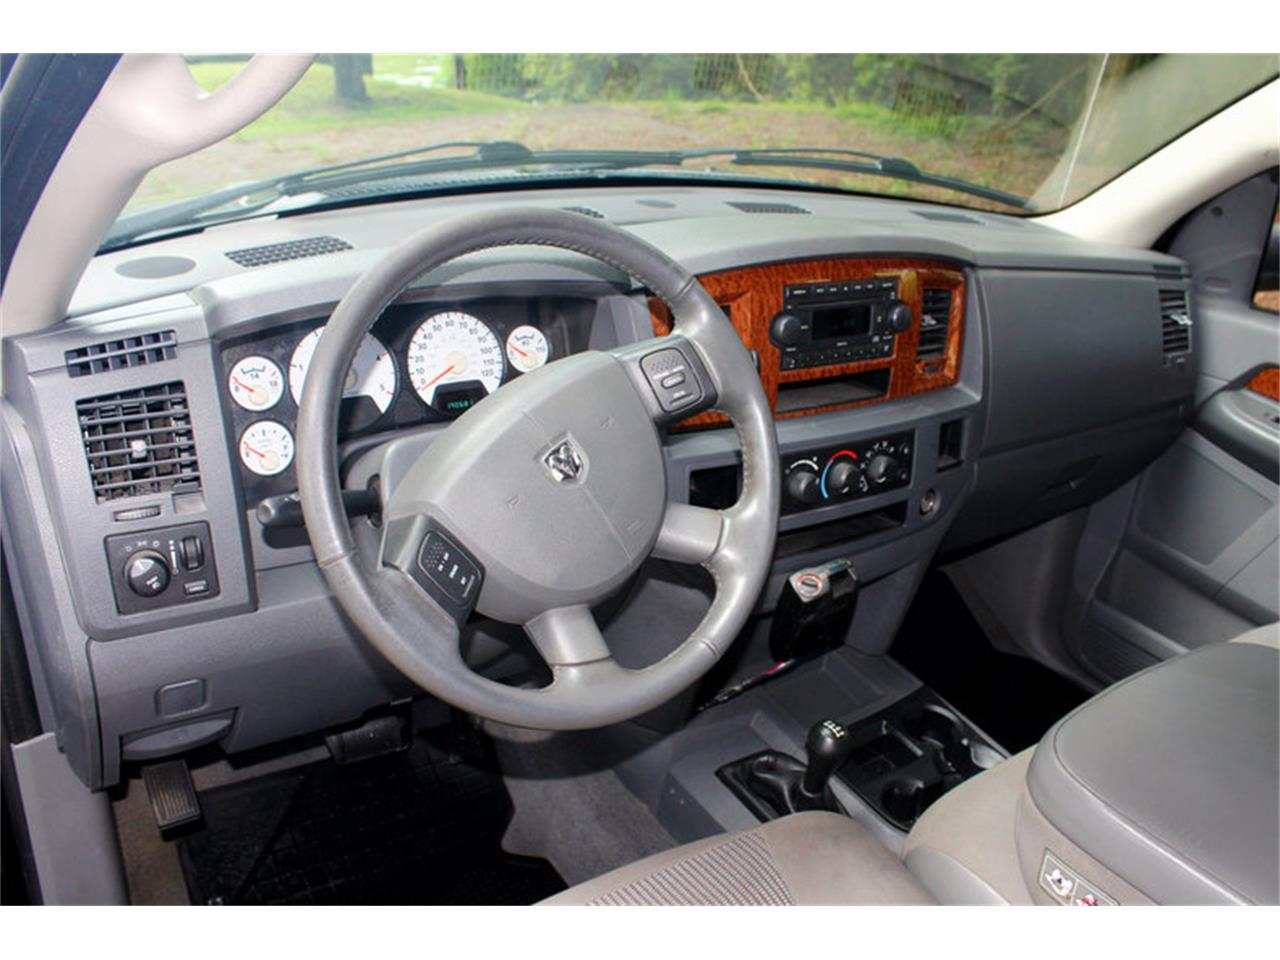 Large Picture of '06 Dodge Ram located in Tennessee - $17,500.00 - O91U